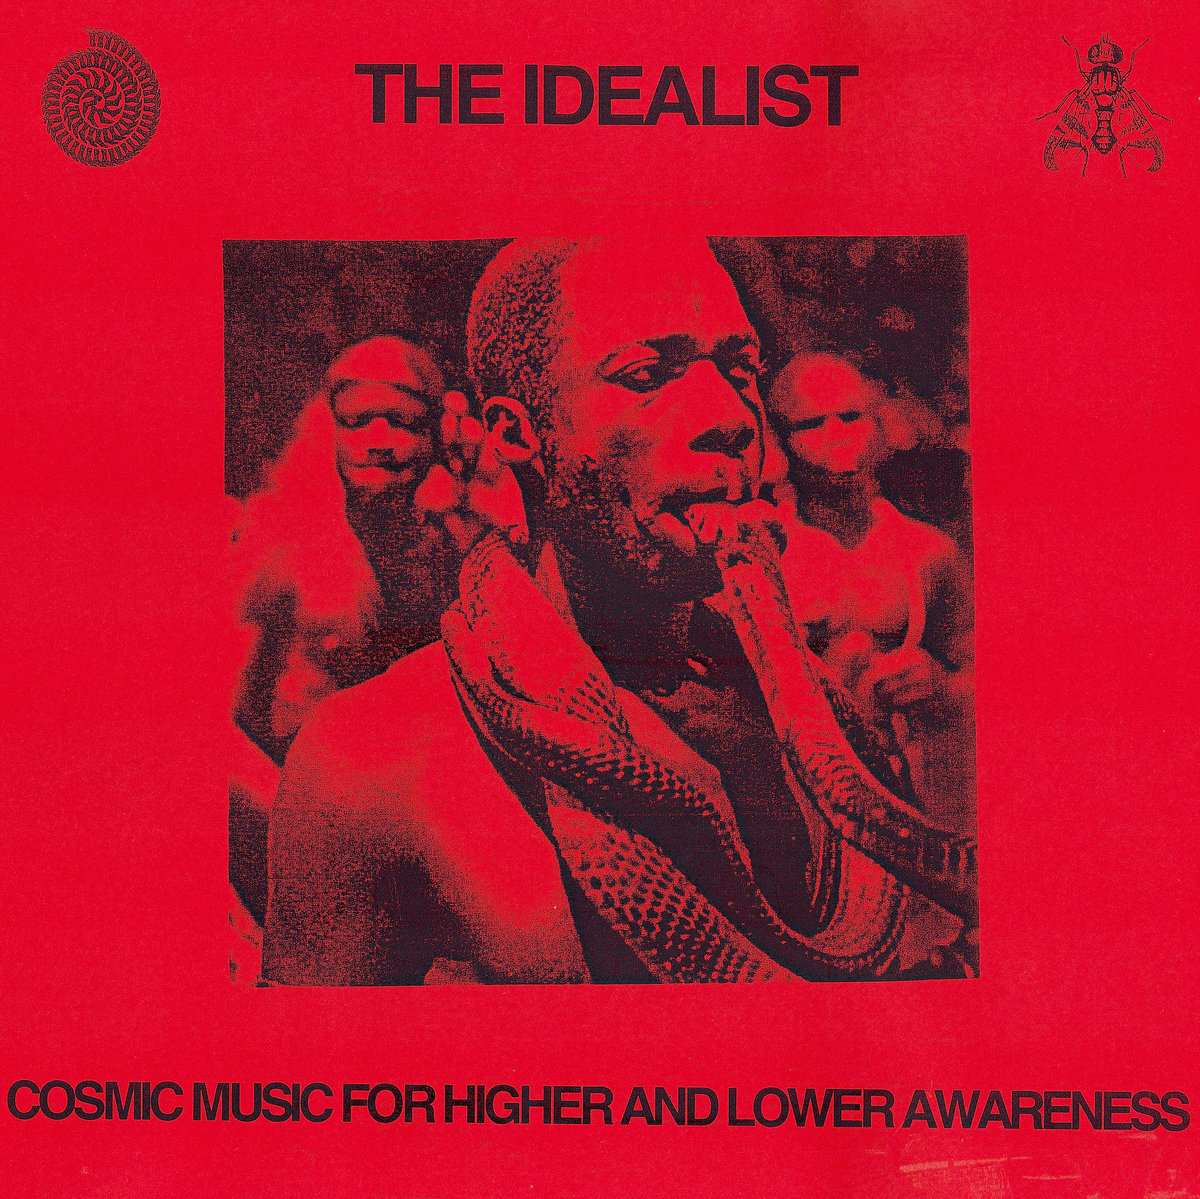 The Idealist : Cosmic Music For Higher And Lower Awareness